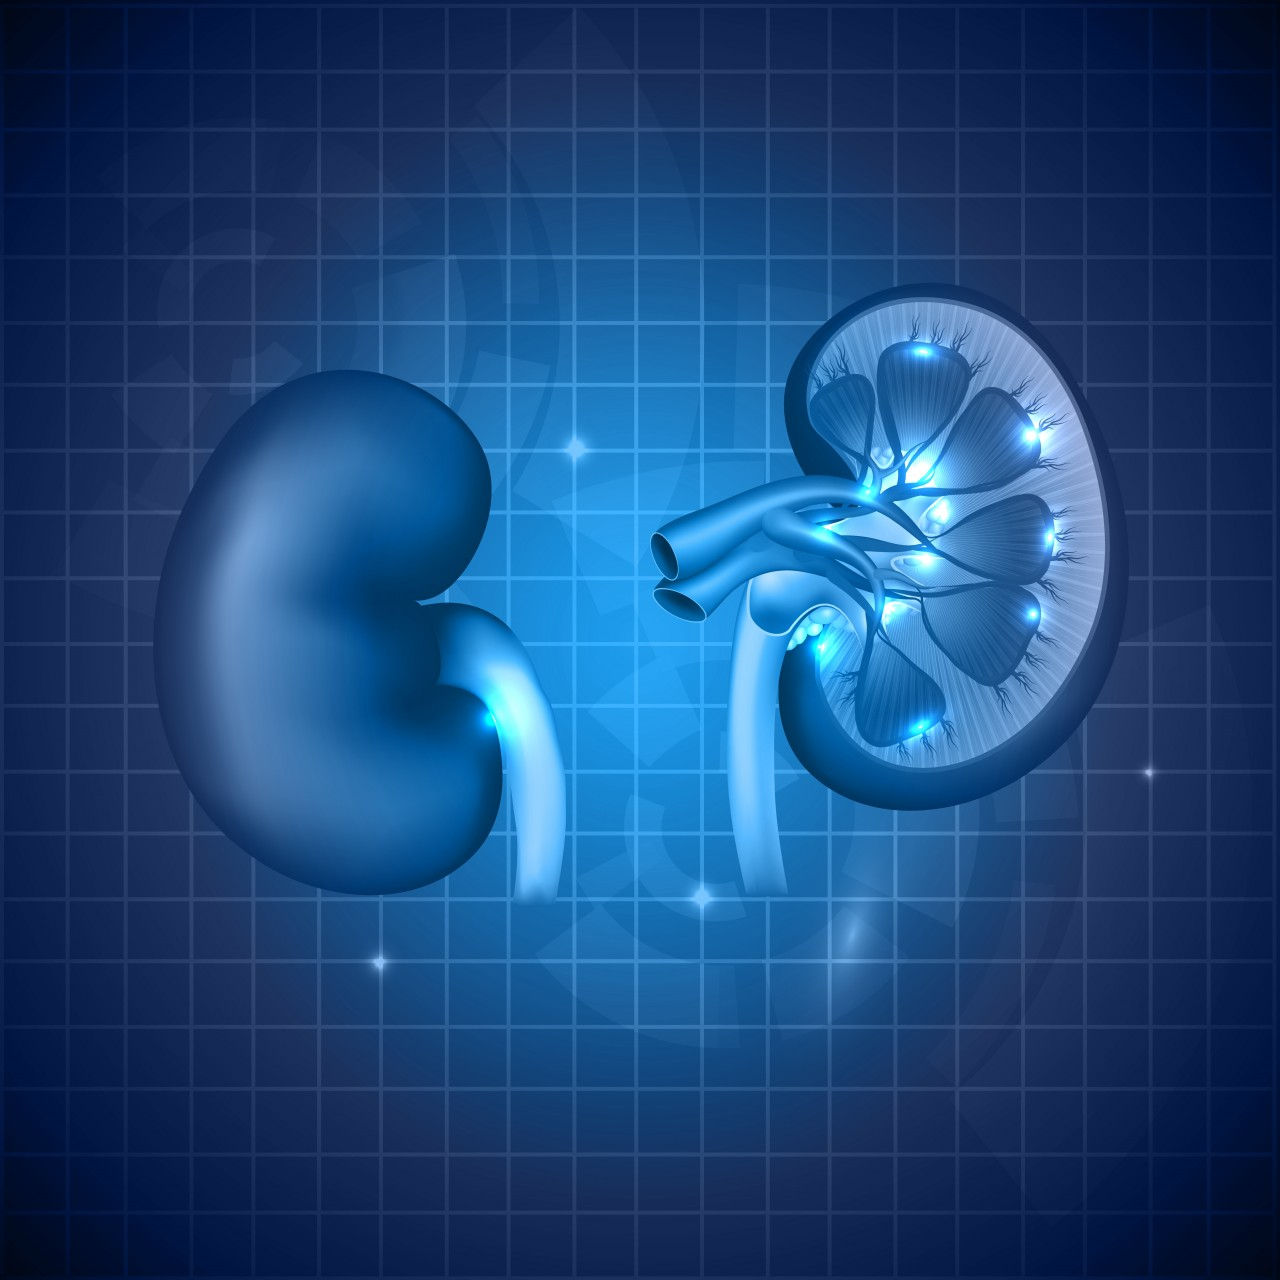 Hard-to-Treat Resistant Microbes in Kidney Disease Patients Are On the Rise, Study Finds